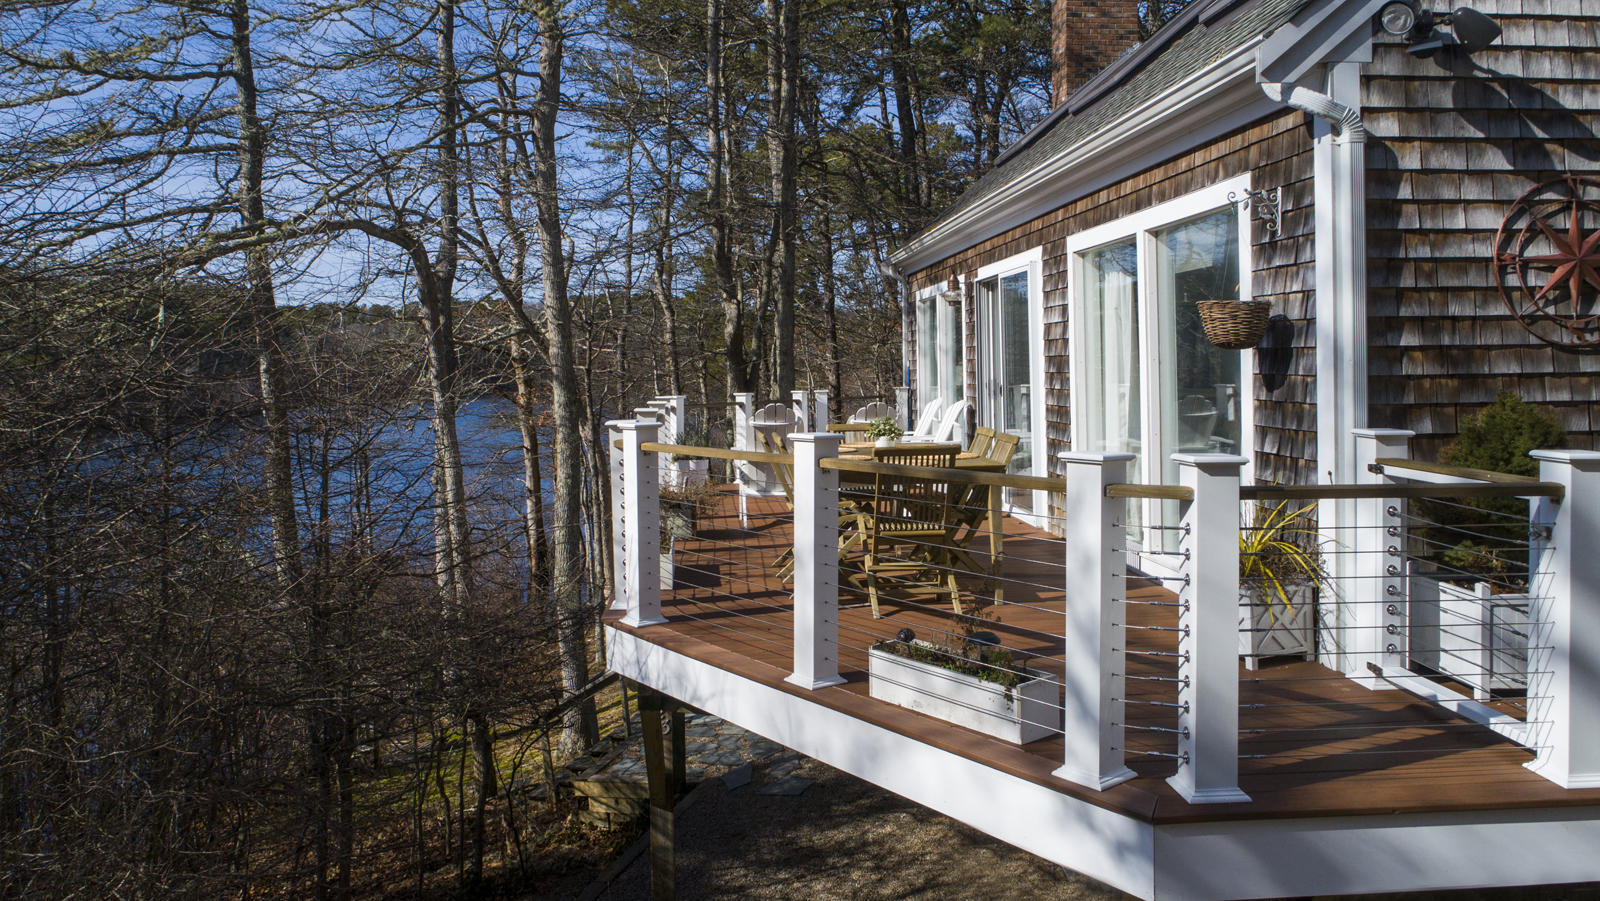 223 South Pond Drive, Brewster MA, 02631 sales details